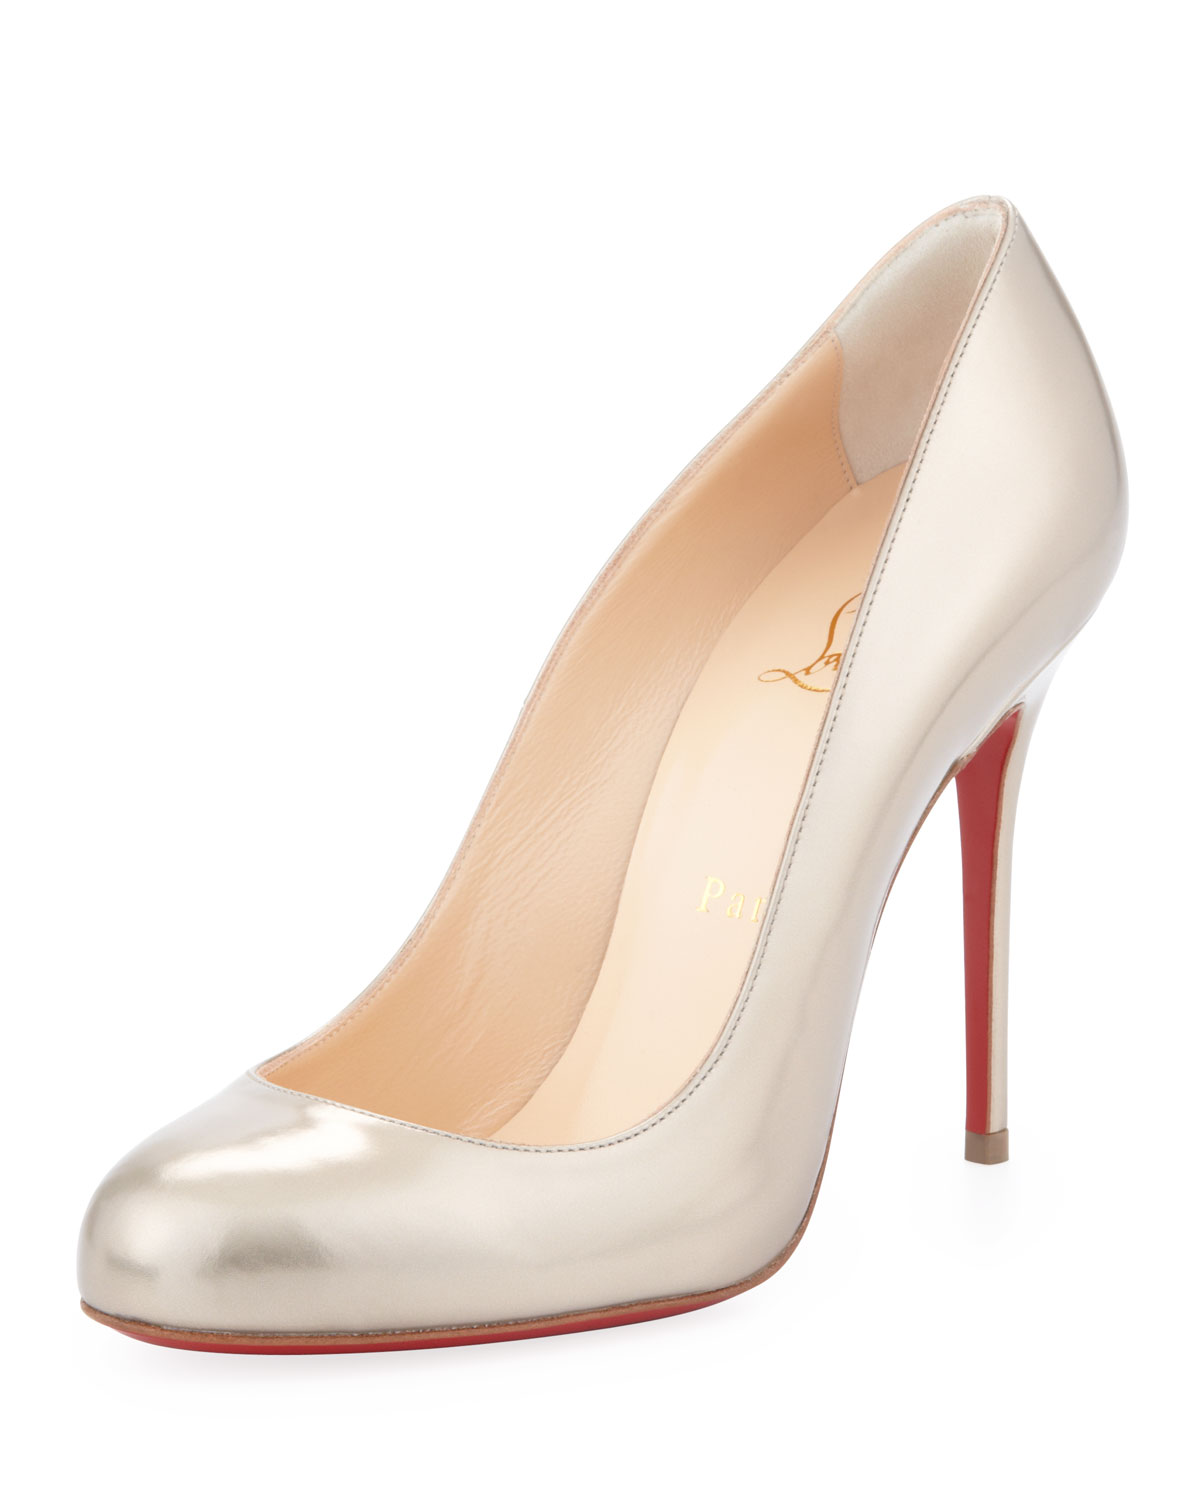 christian louboutin round-toe pumps Red satin | cosmetics digital ...